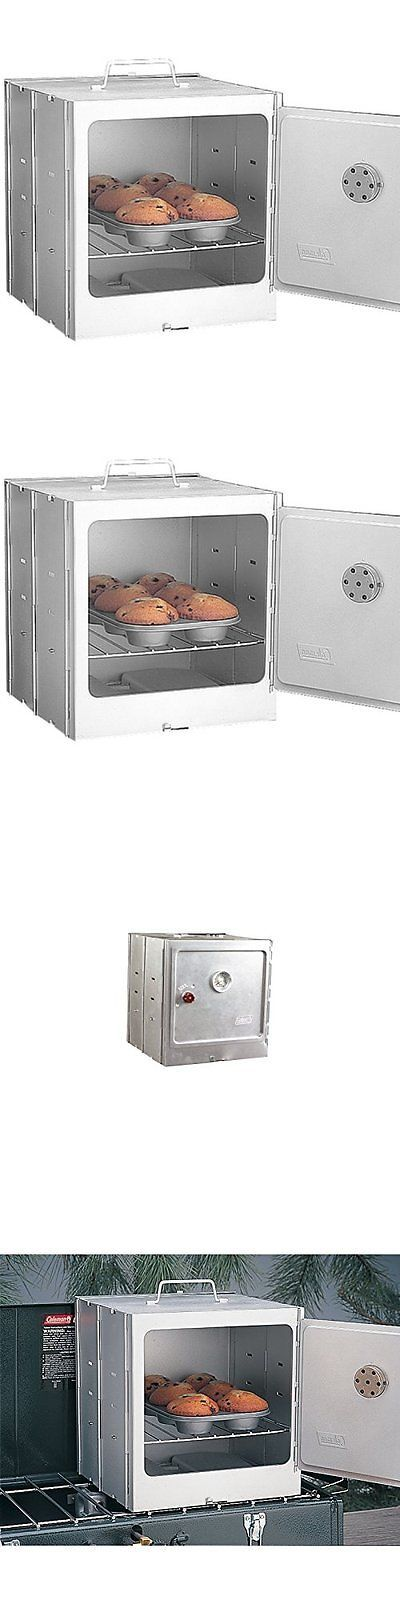 Camping Ovens 181387: Coleman Camp Oven BUY IT NOW ONLY: $32.46